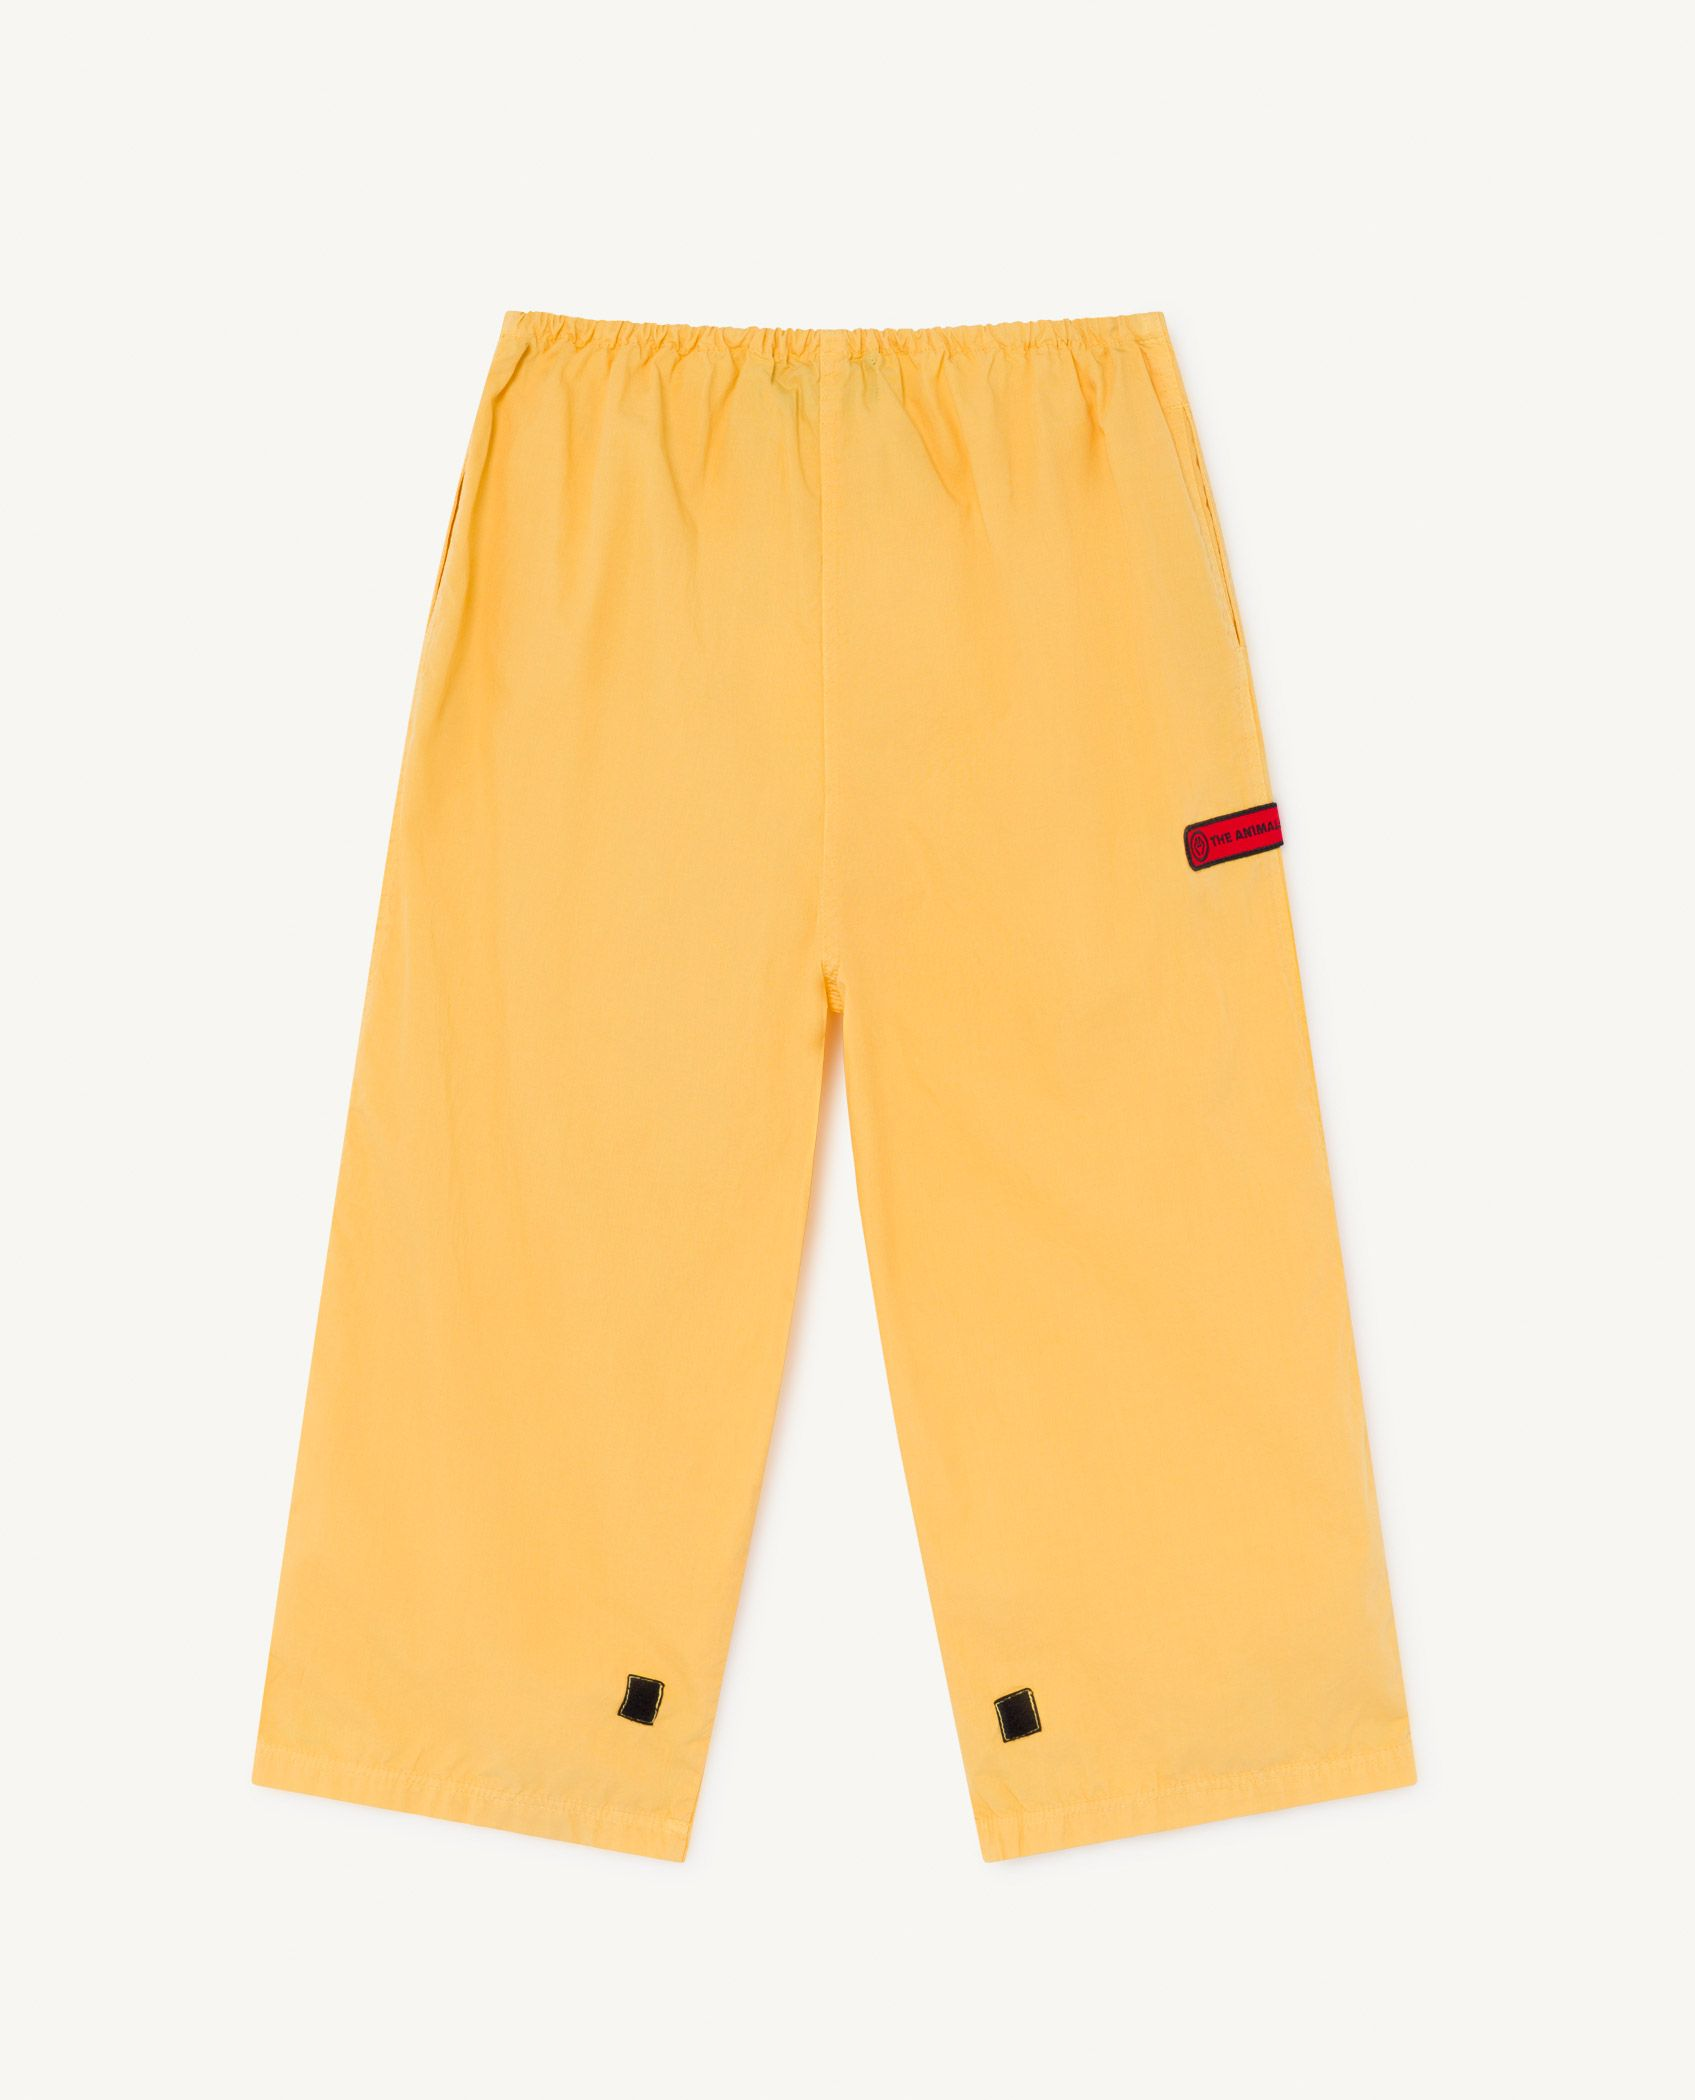 Yellow Eel Trousers img-2